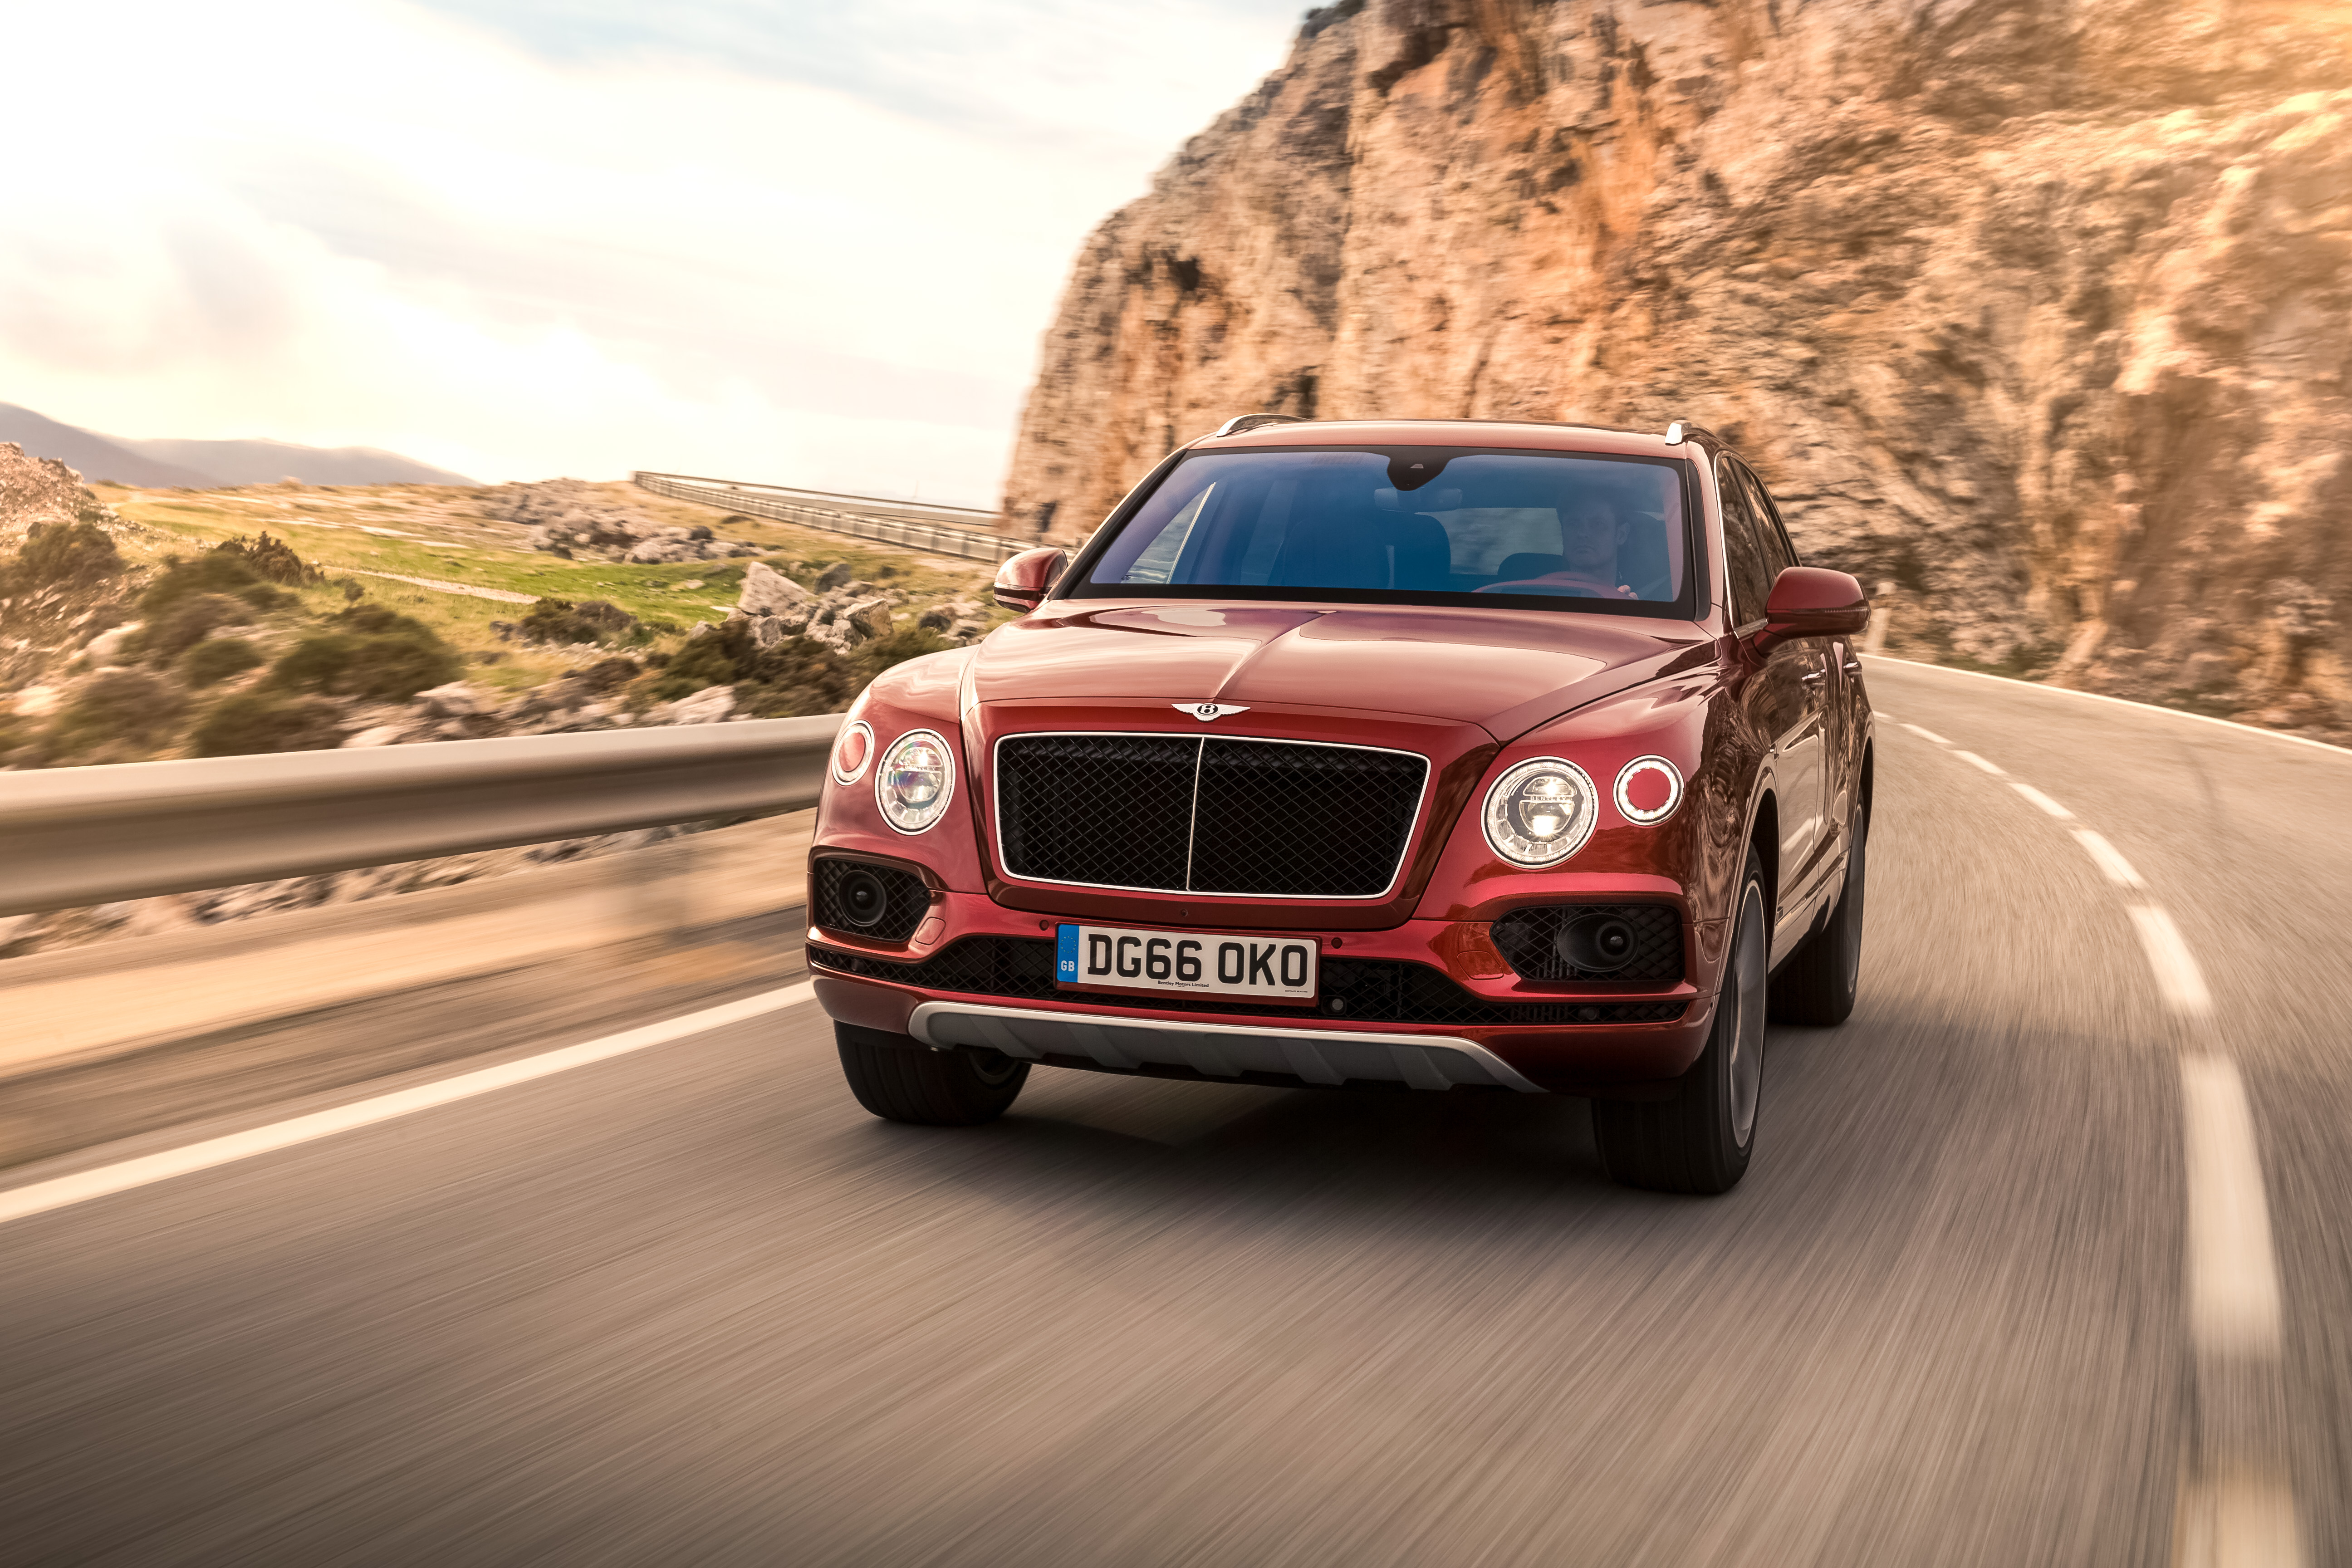 Bentley presents the world's fastest diesel SUV with the V8 Bentayga Diesel